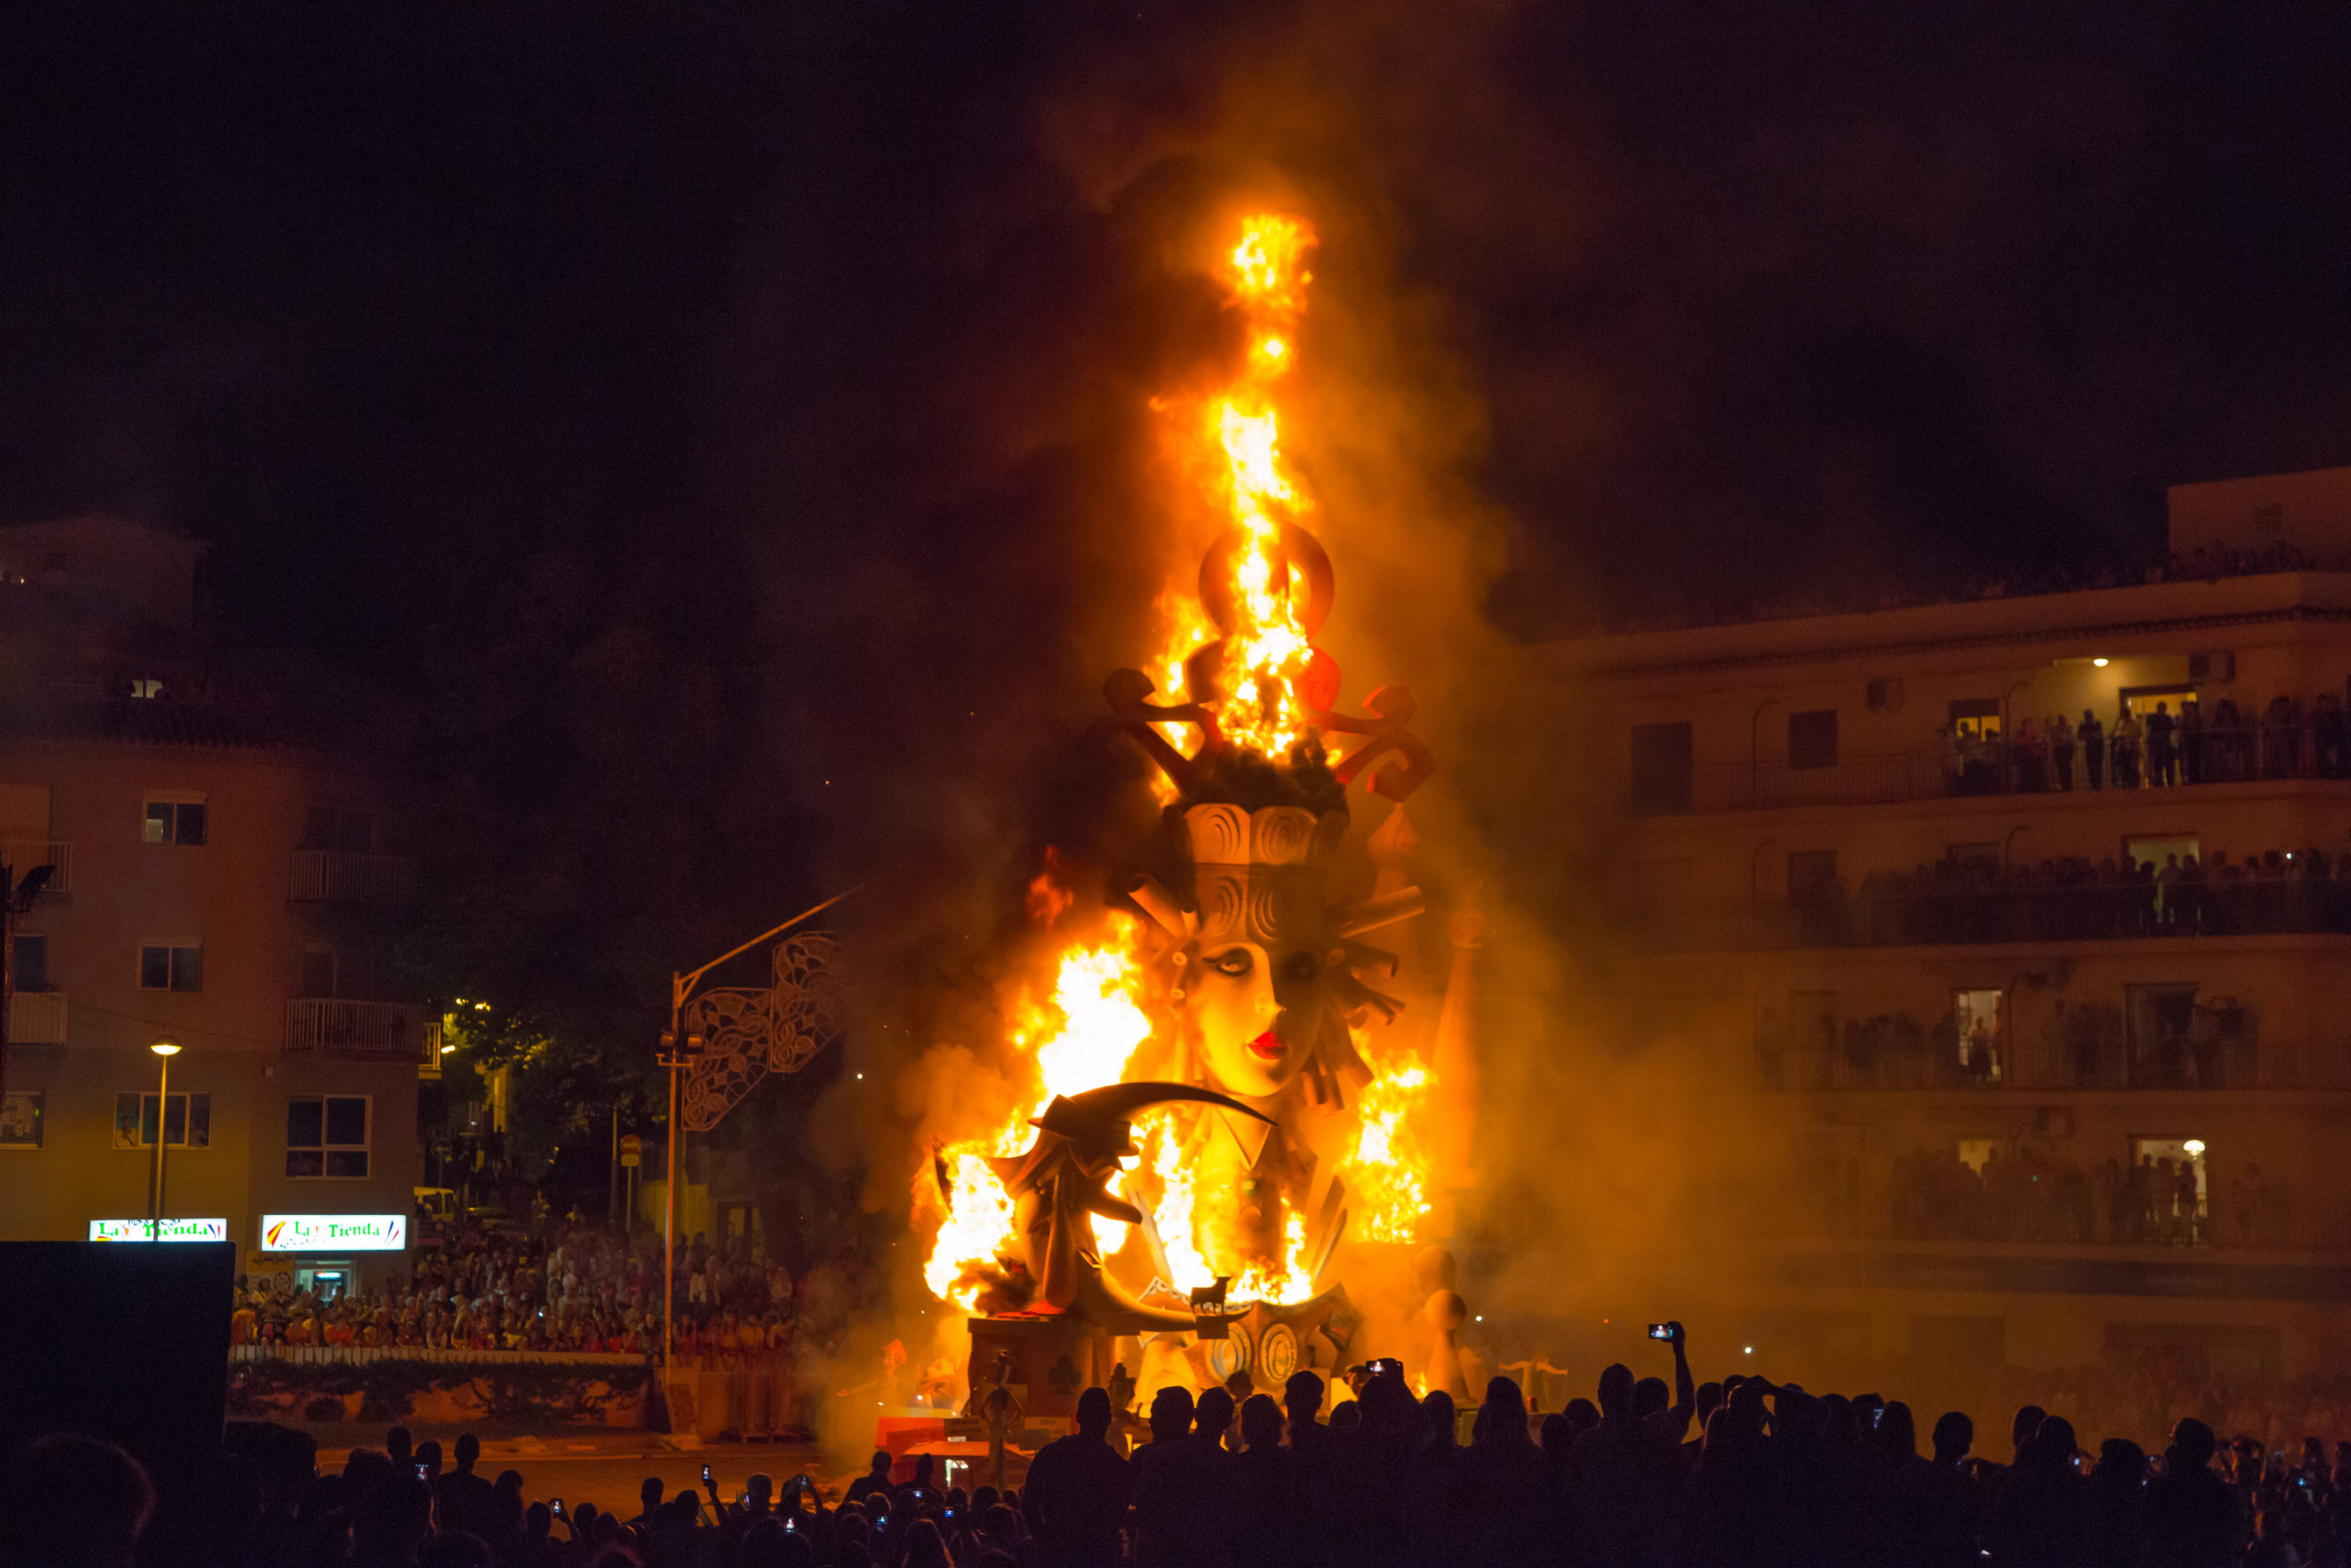 BONFIRES OF SAN JUAN